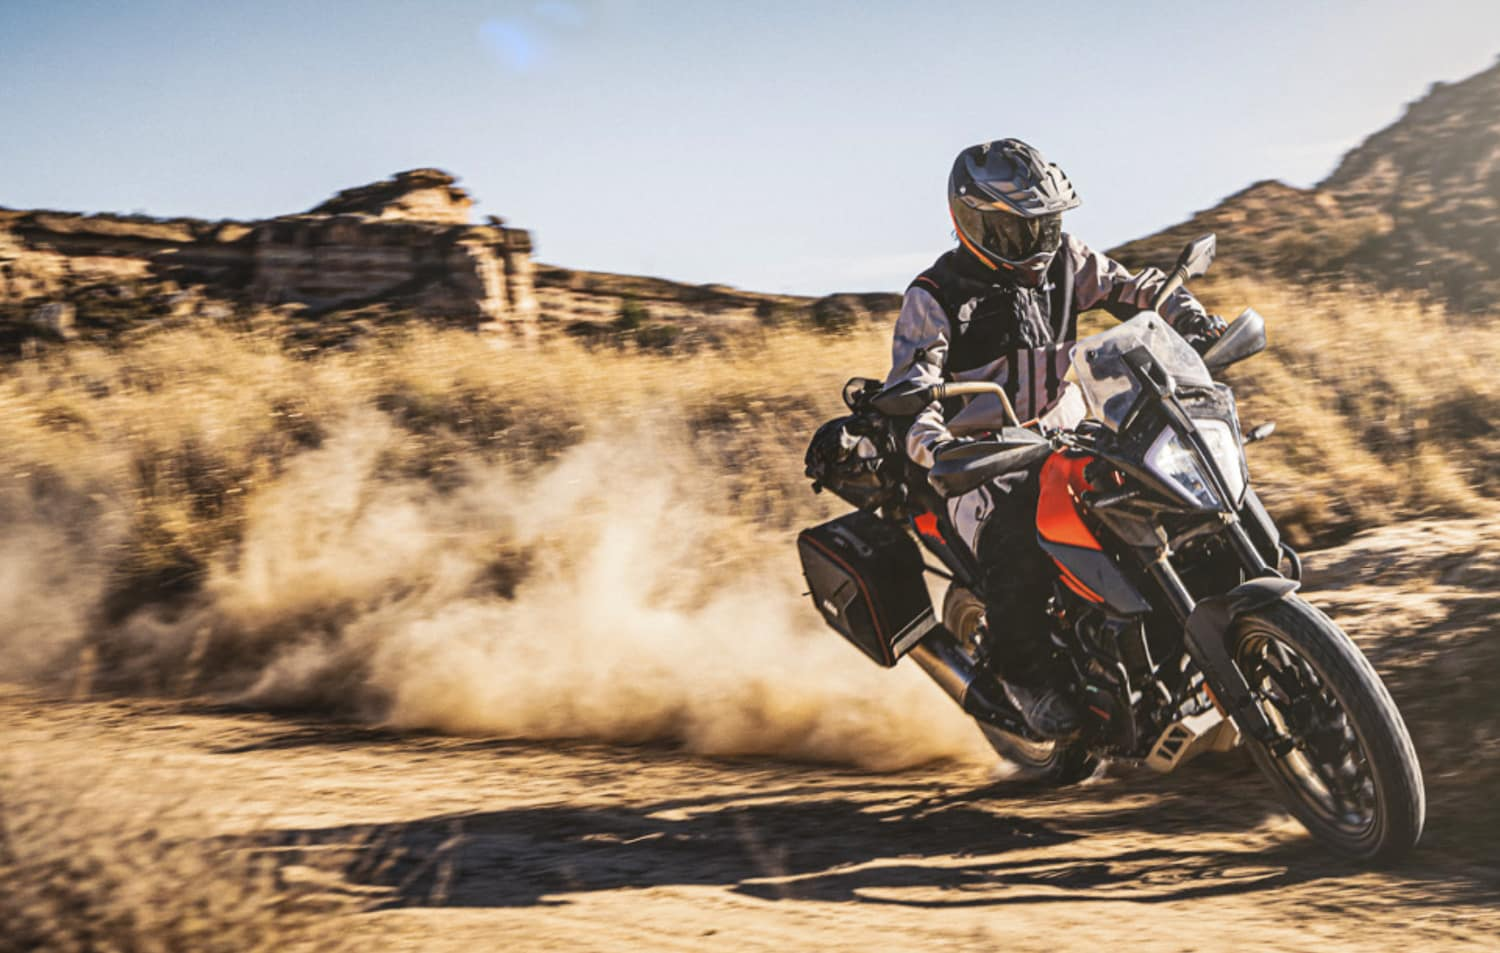 KTM's Adventure 390 with cornering ABS